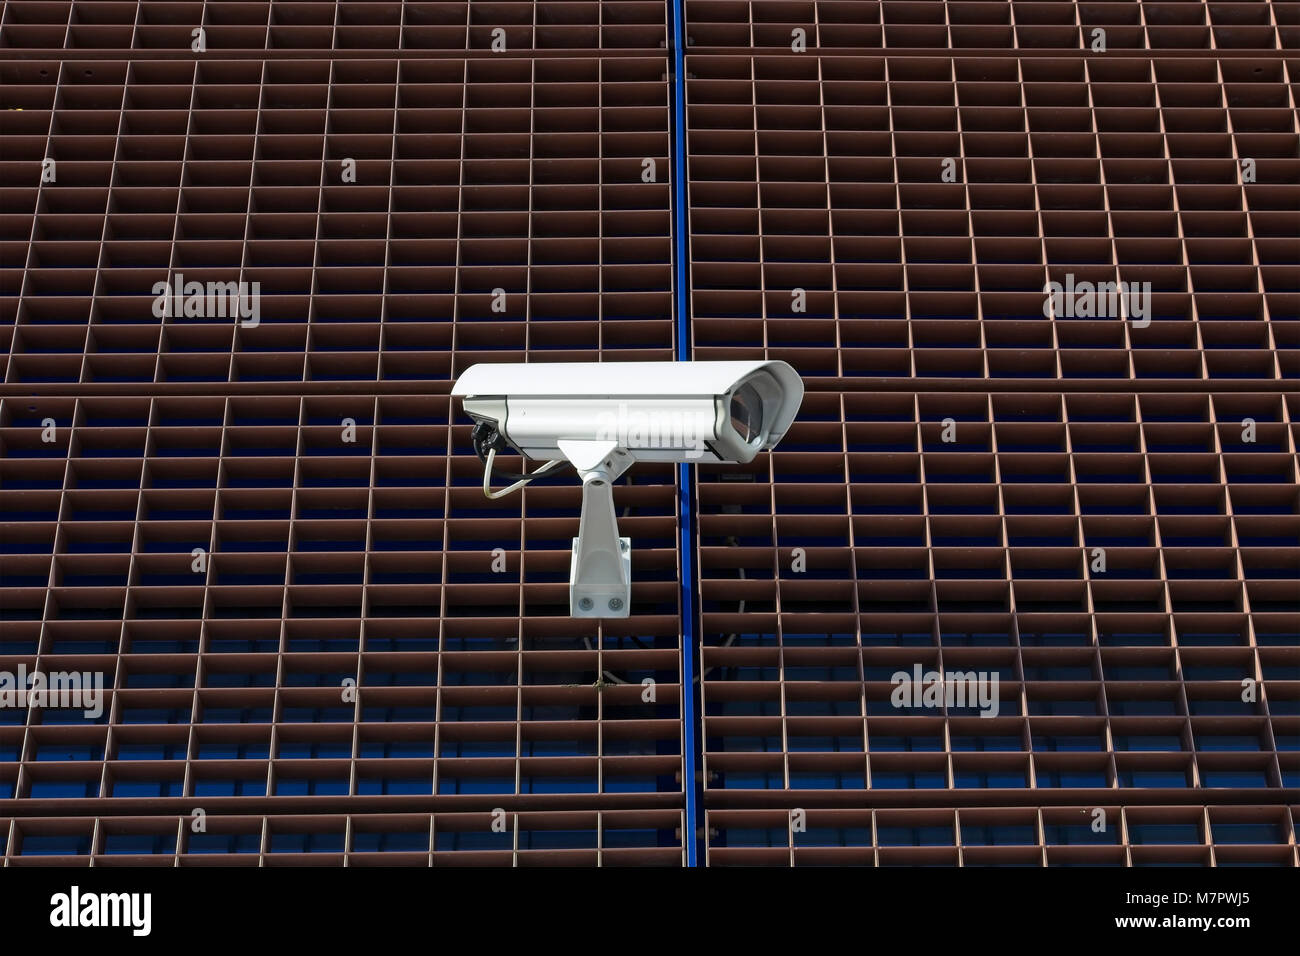 Surveillance camera on building exterior wall - Stock Image